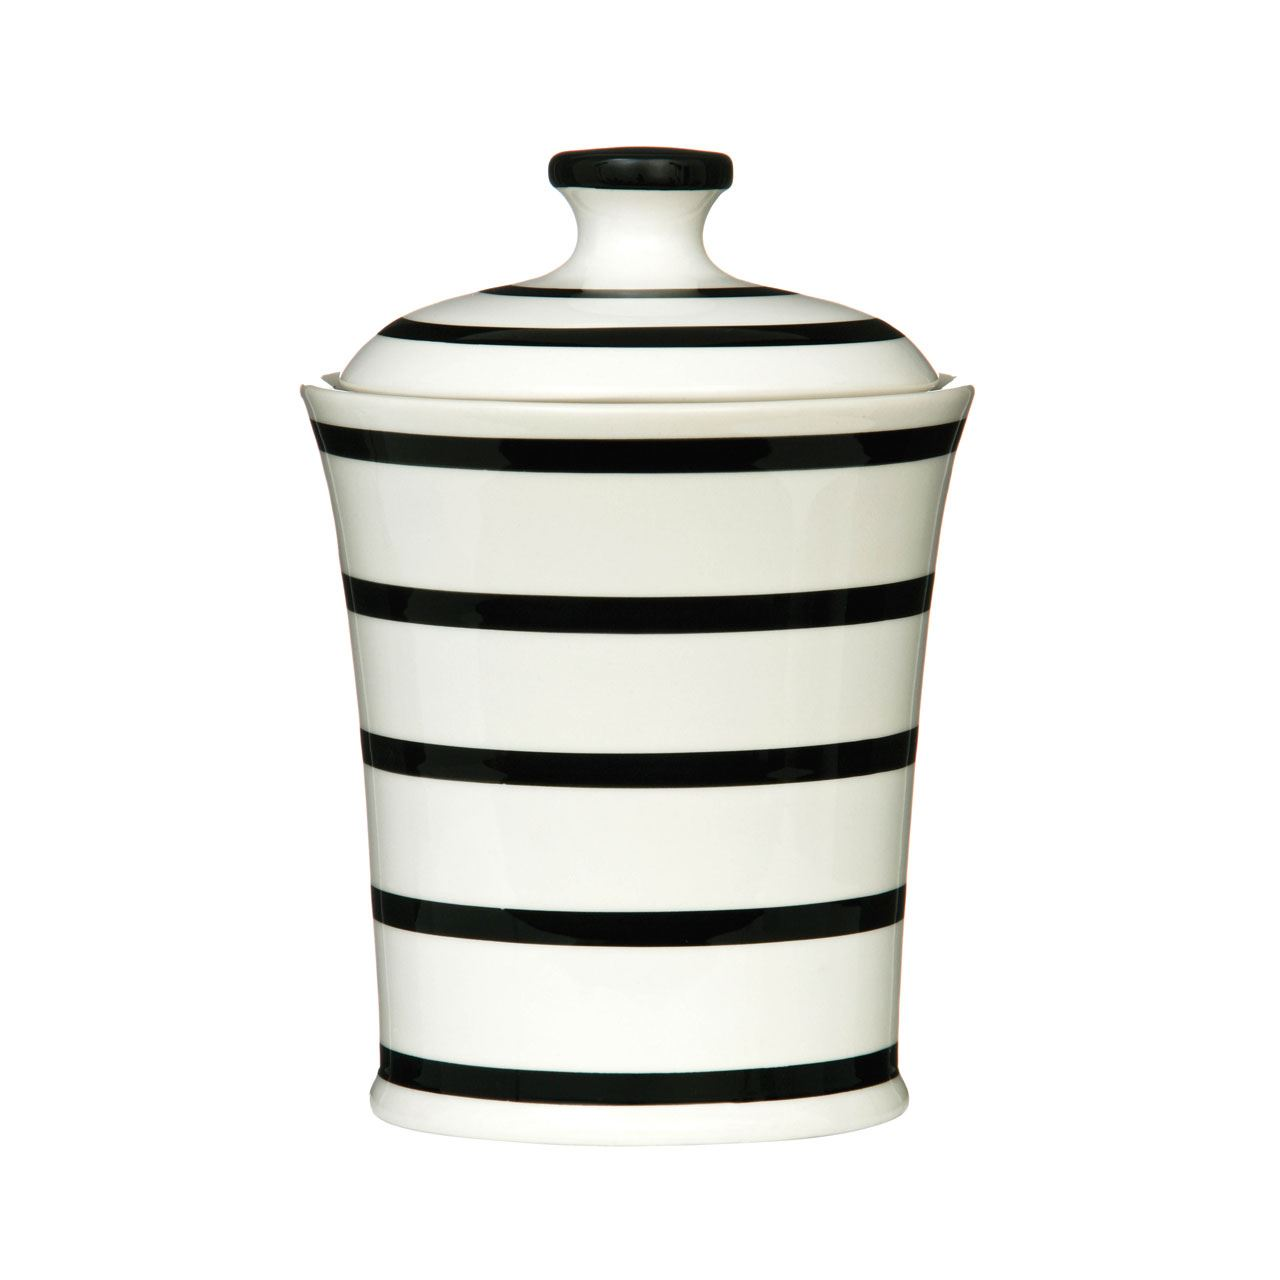 Black-Stripe-Ceramic-Dining-Kitchen-Accessories-Canister-Storage-Jar-Your-Home thumbnail 5